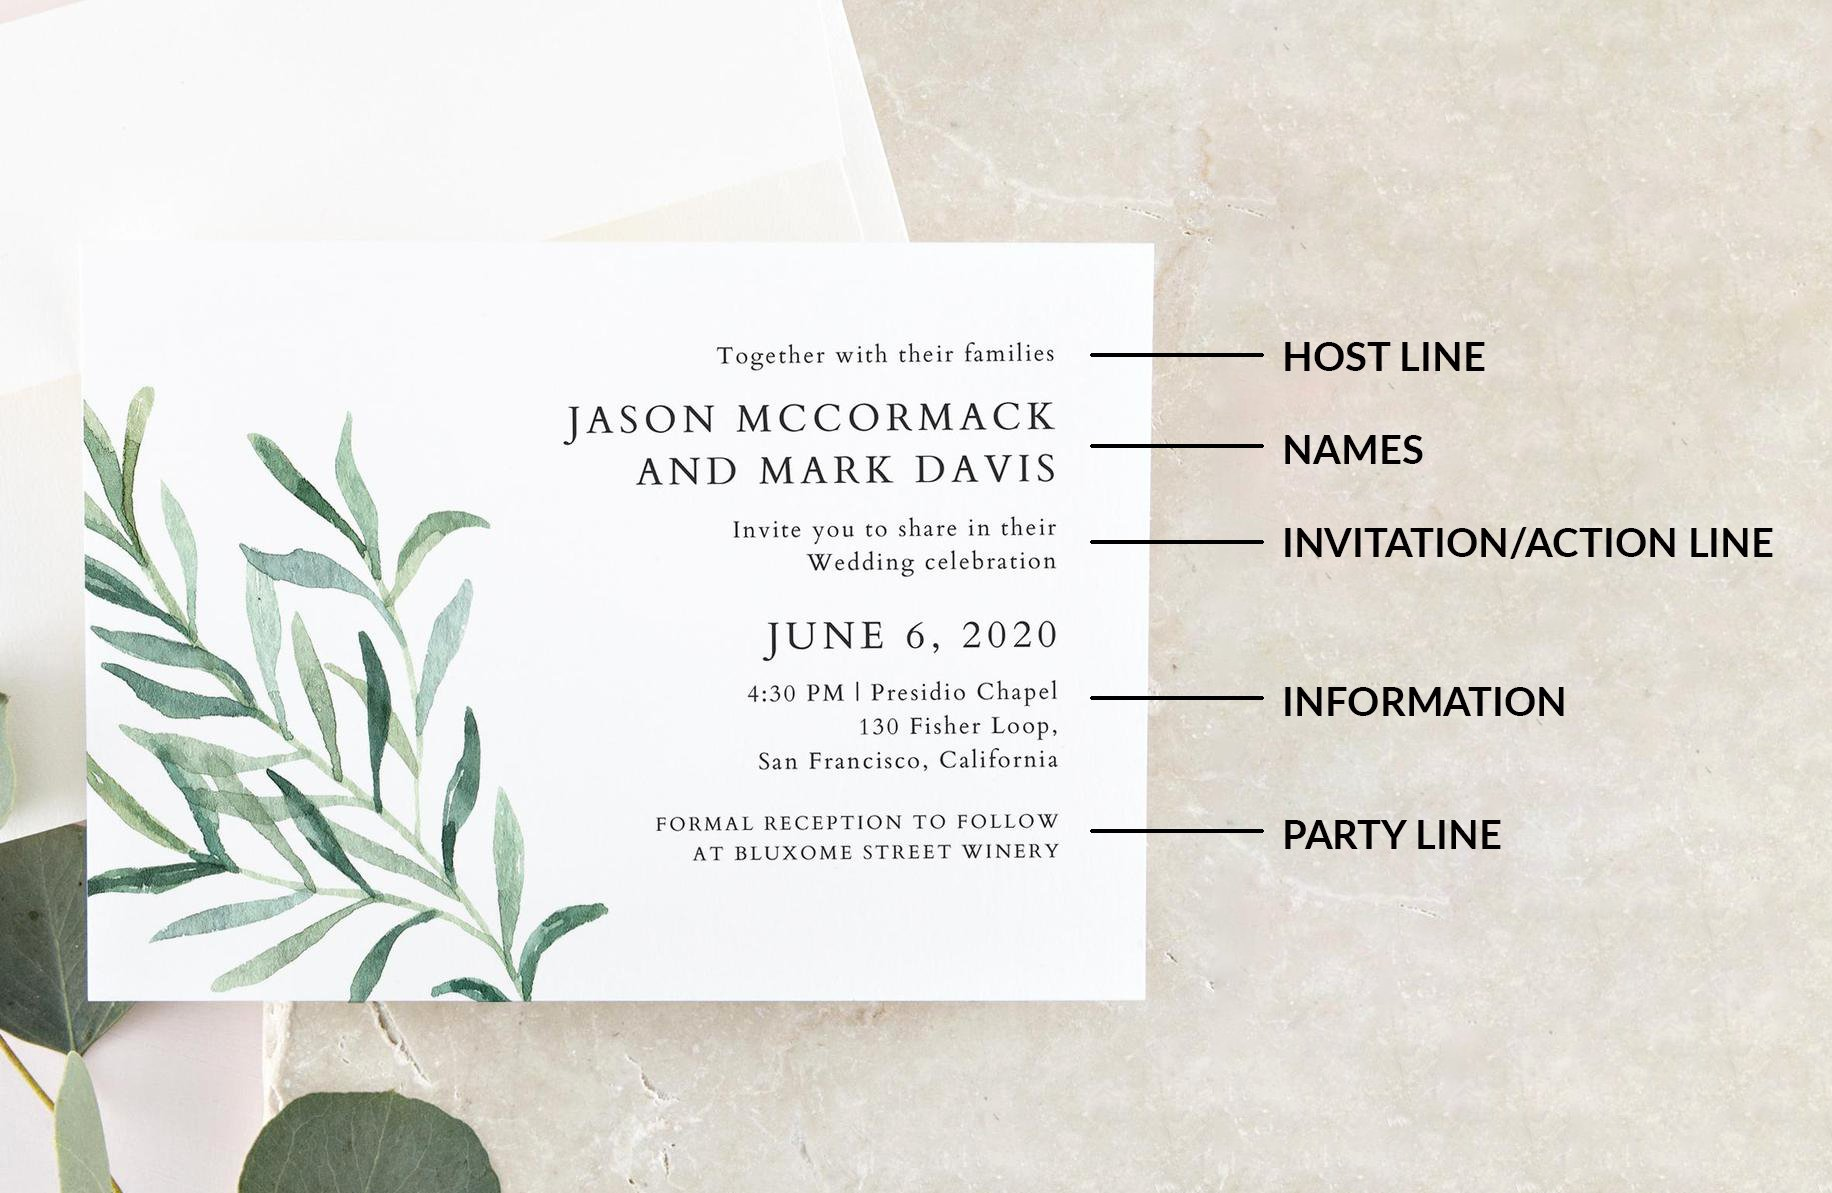 Wedding Invitation Wording Template Lovely Wedding Invitation Wording Examples In Every Style